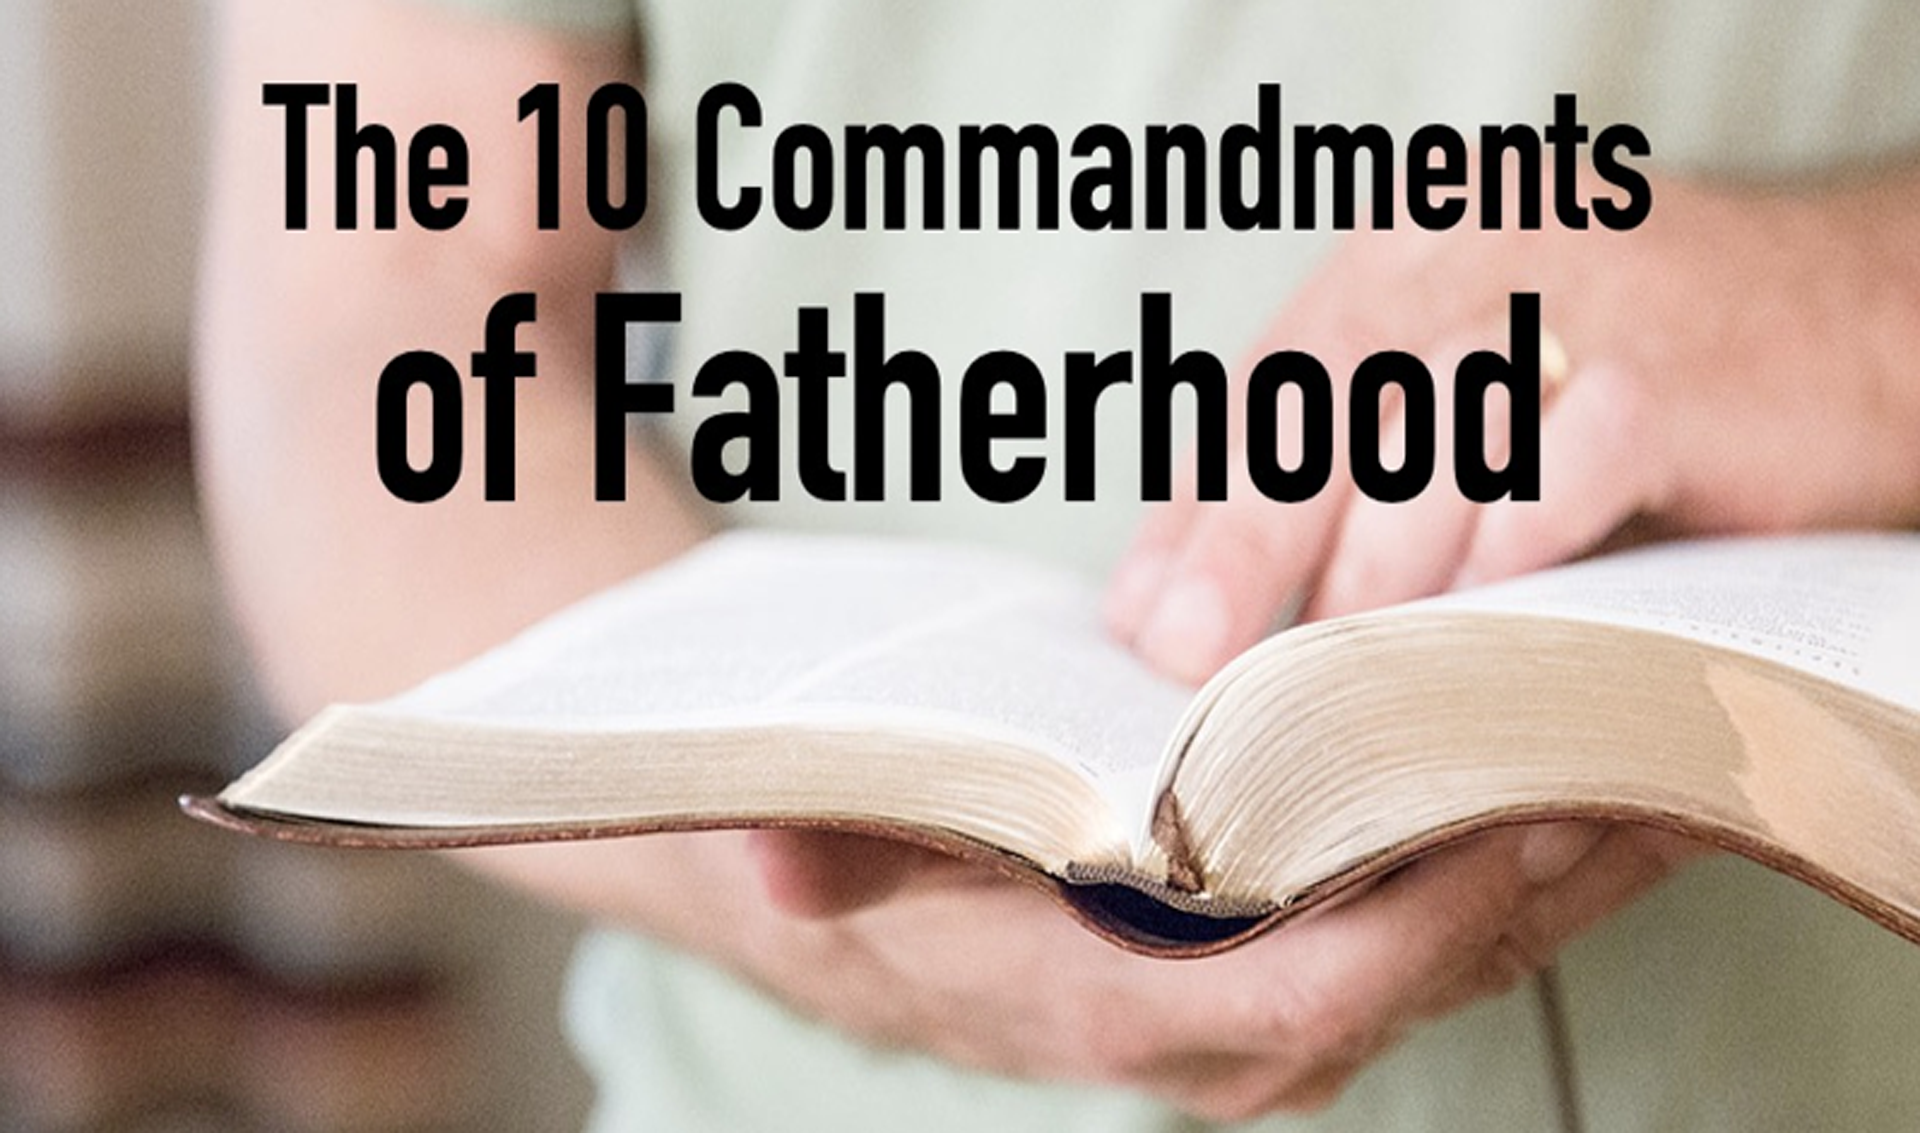 The Ten Commandments of Fatherhood